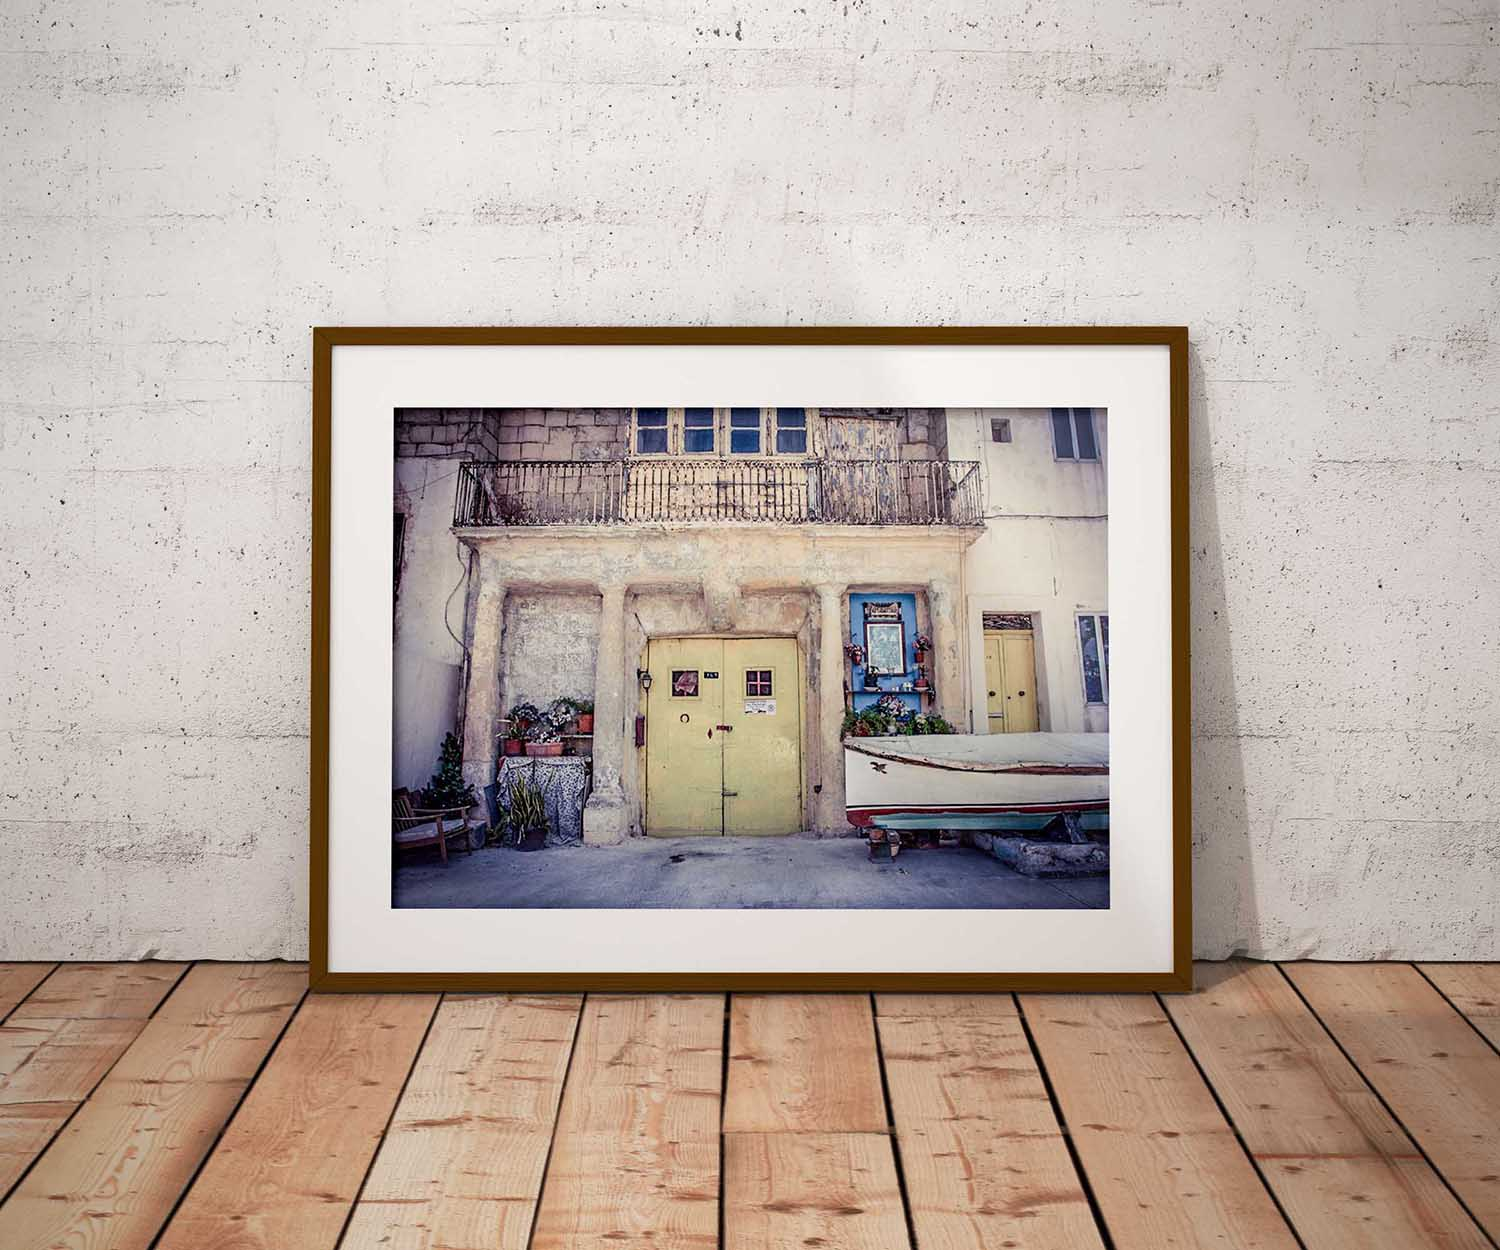 Doors and Storefronts of Malta - Disappearing Malta - The Shrine, yellow doors, and sail boat, Pieta, Malta ©Helen Jones-Florio photography prints